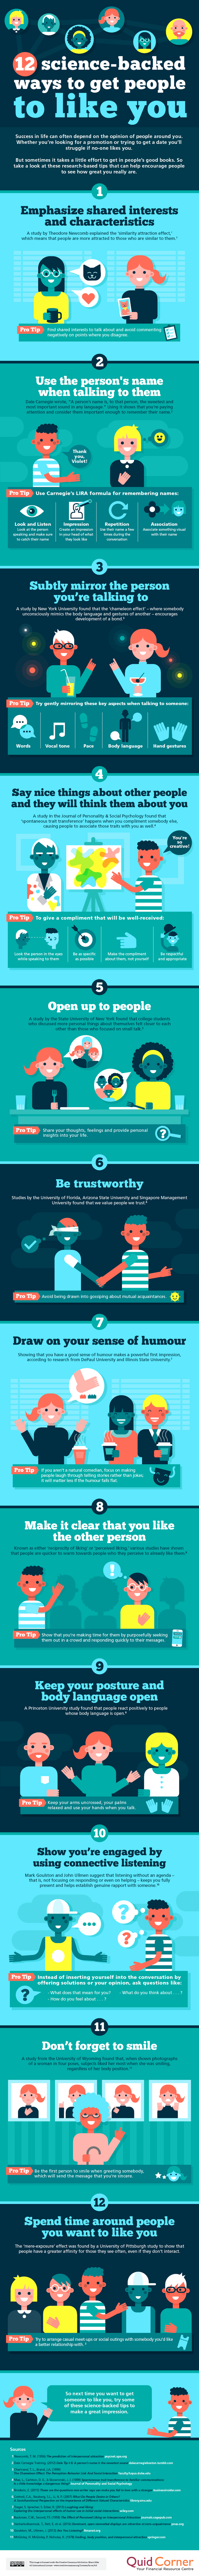 12 Science-Backed Ways to Get People to Like You Infographic